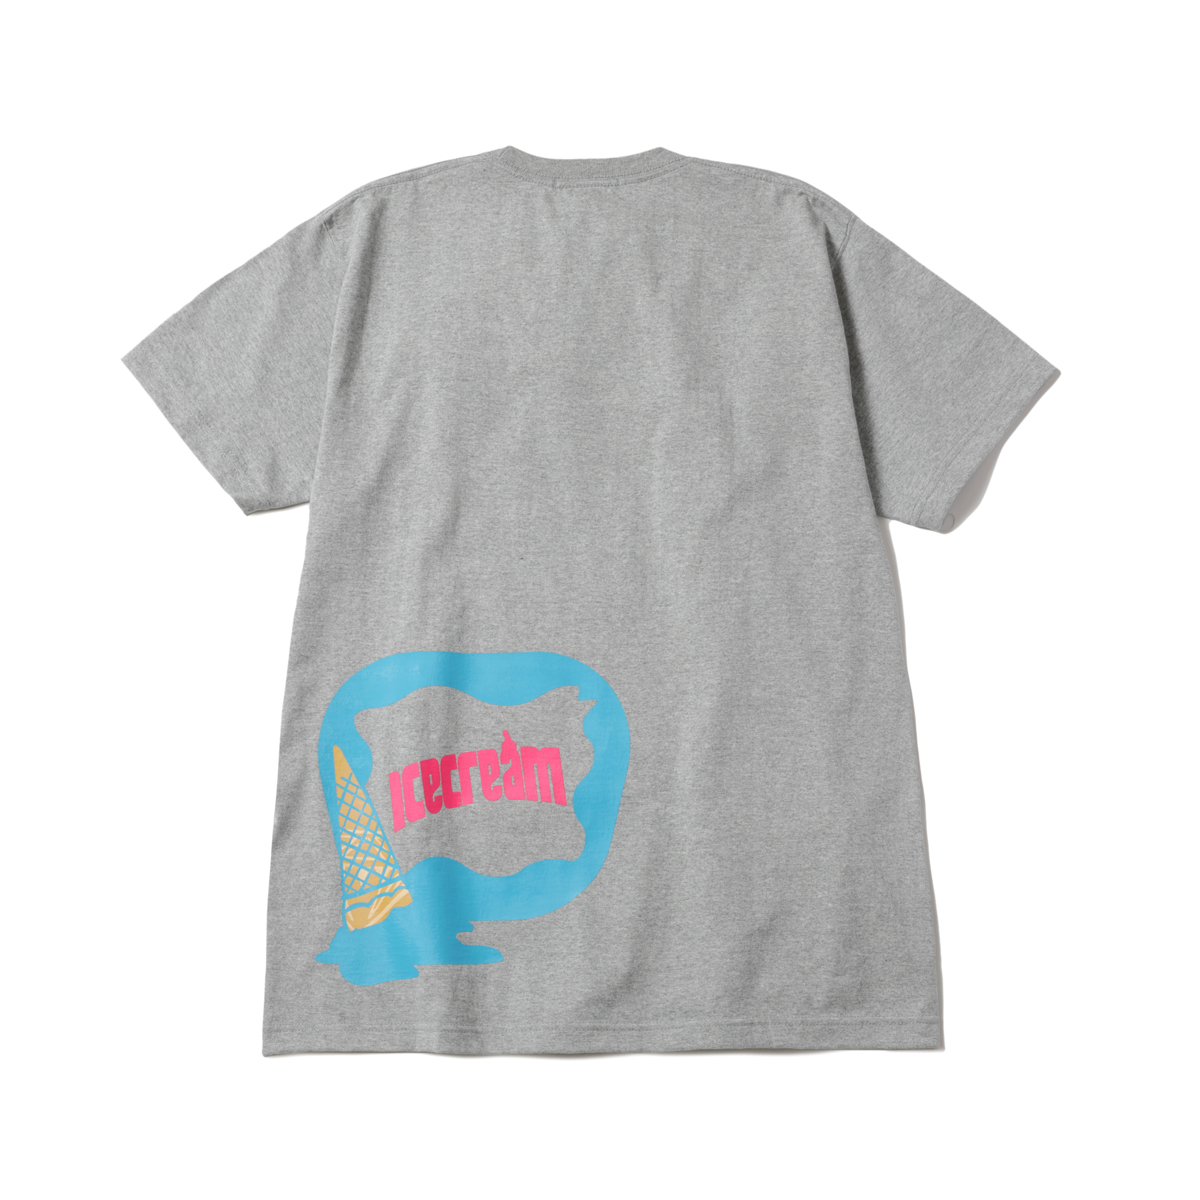 【50%OFF】CONE MAN T-SHIRT (JP EXCLUSIVE)